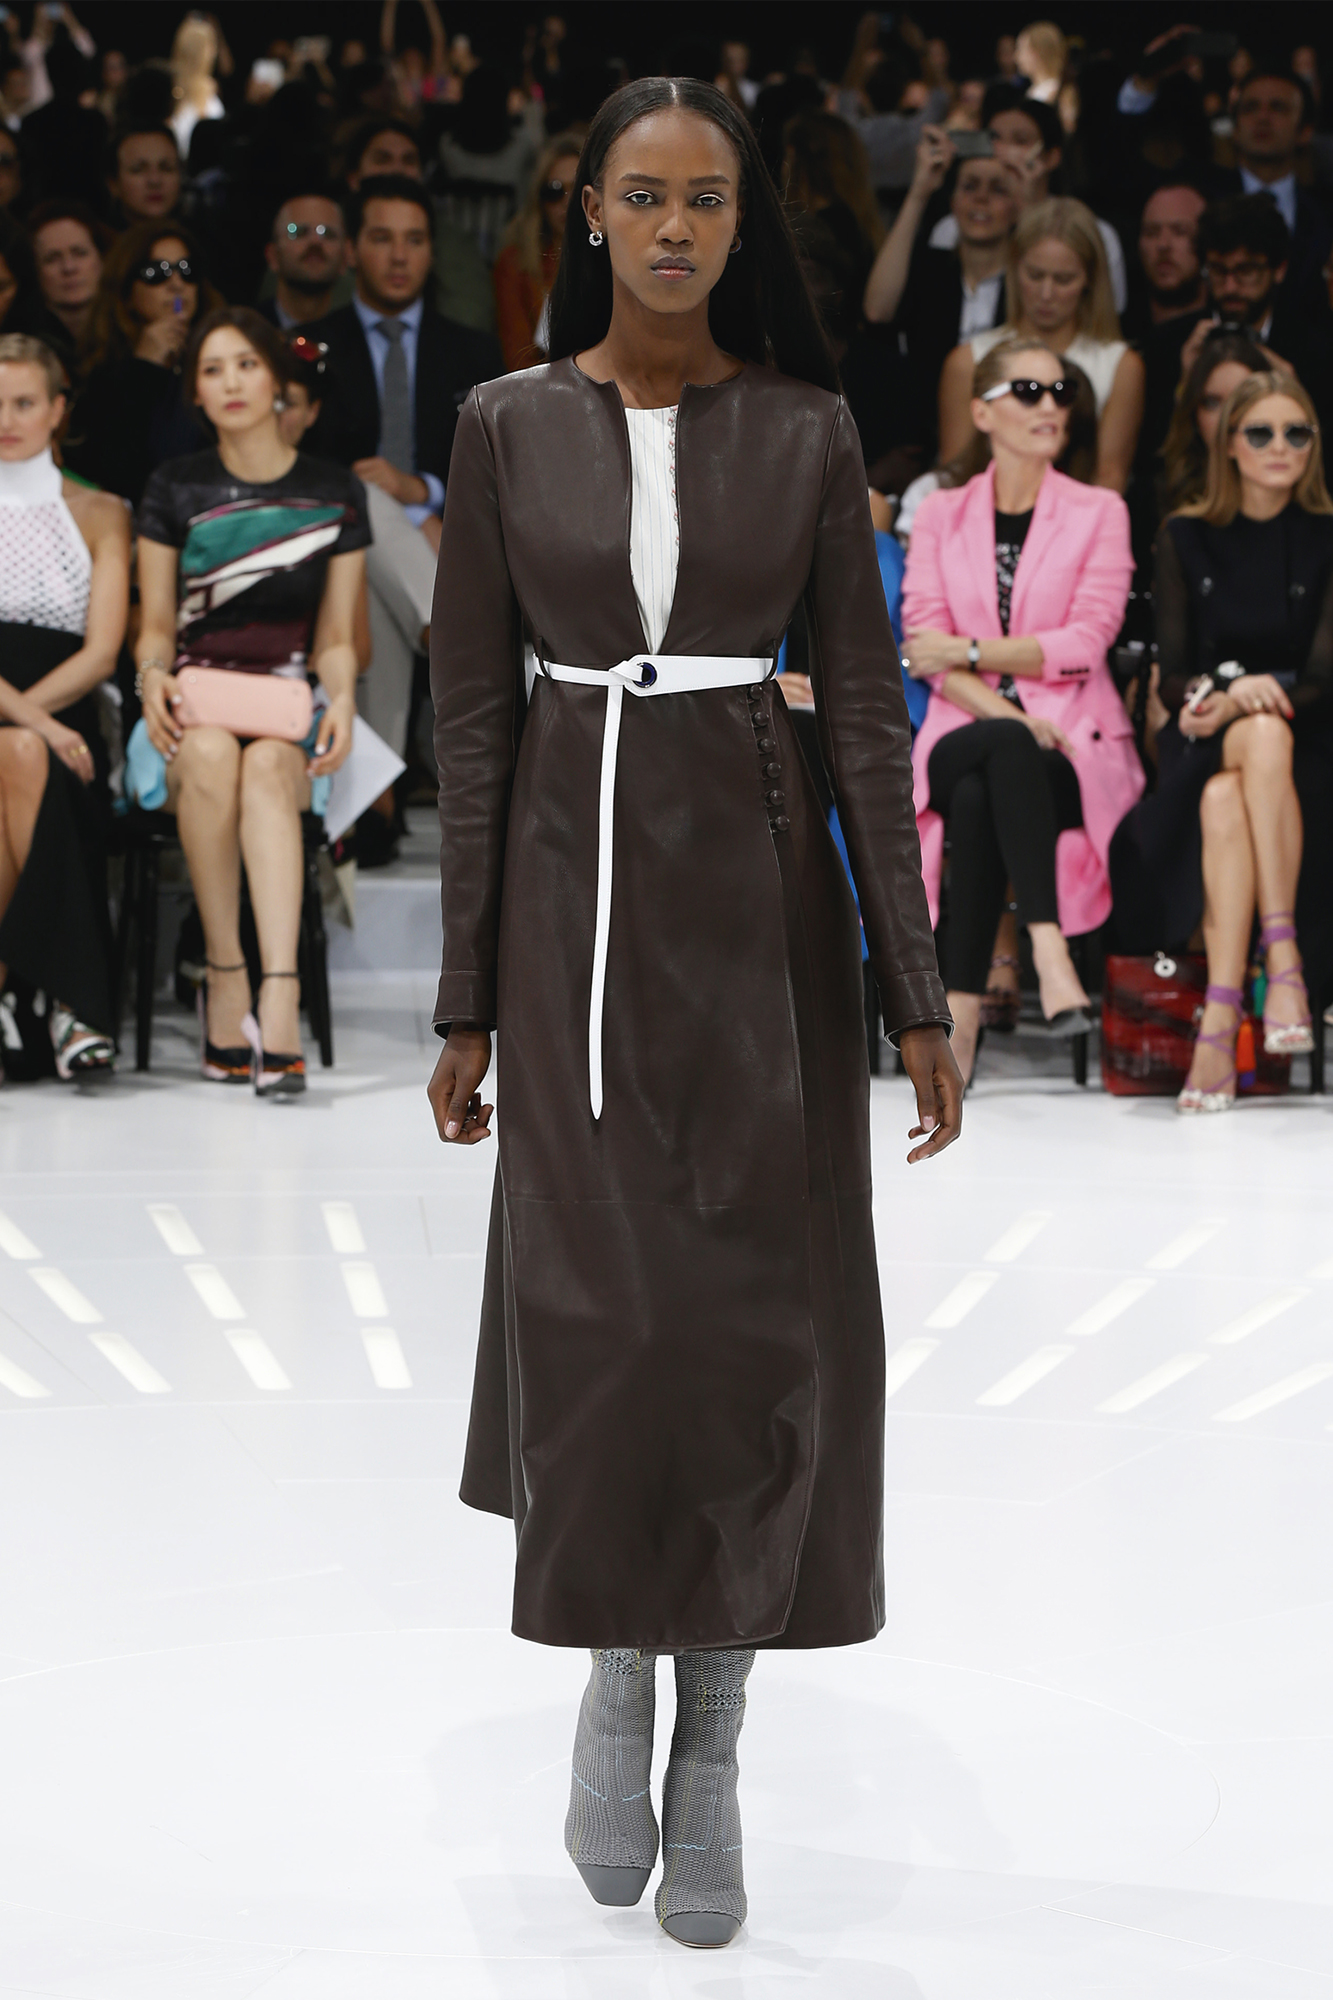 christian-dior-spring-summer-RTW-collection (5)